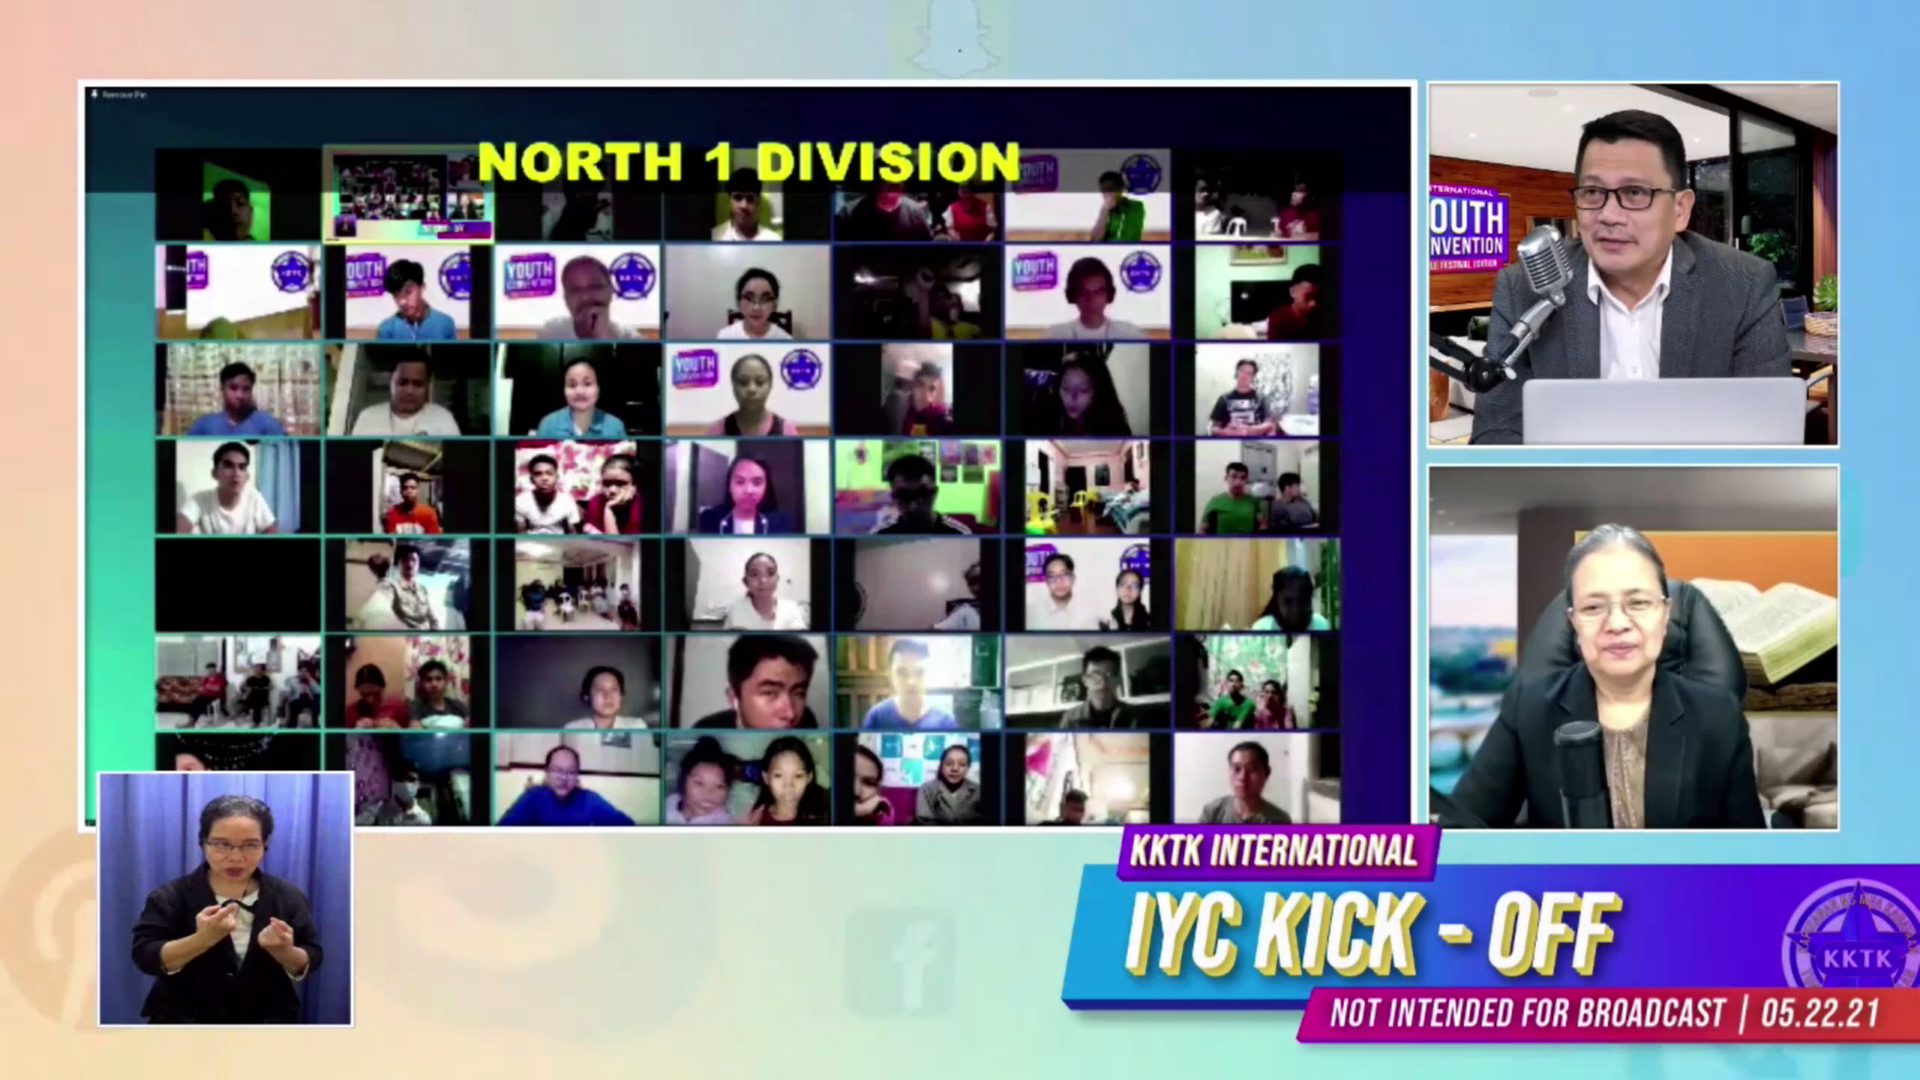 IYC Kick-Off event